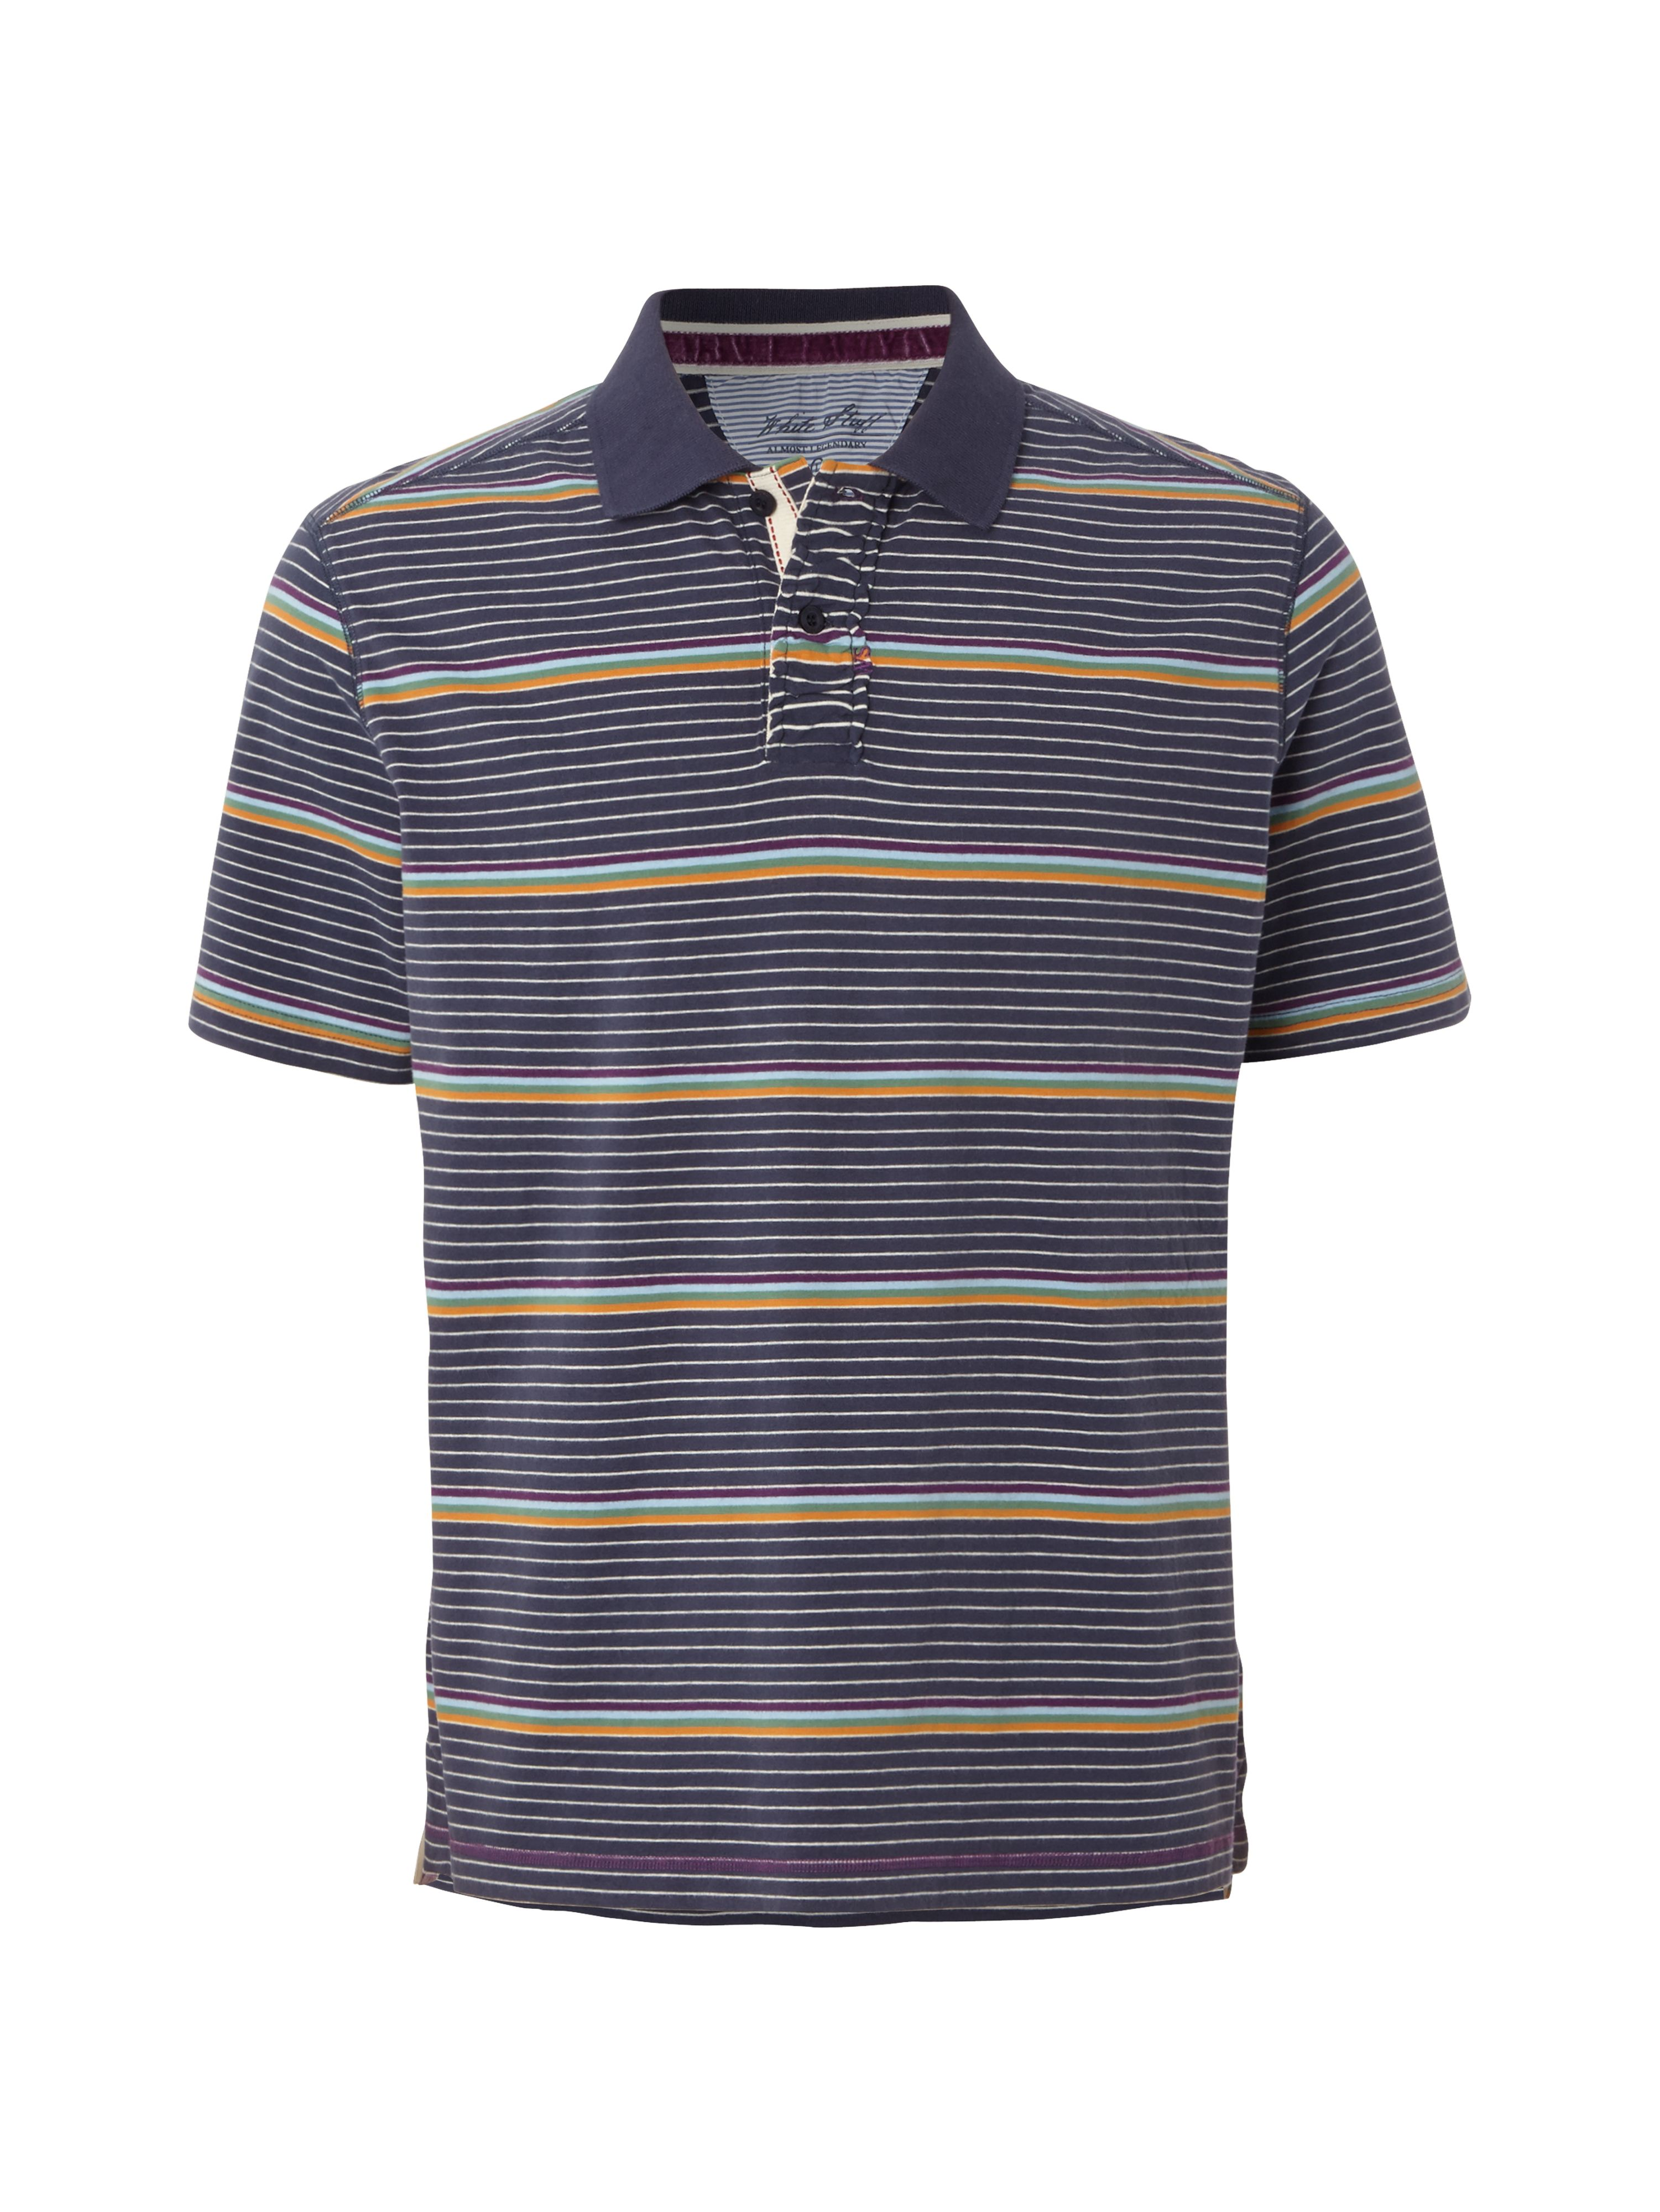 Harbour polo shirt